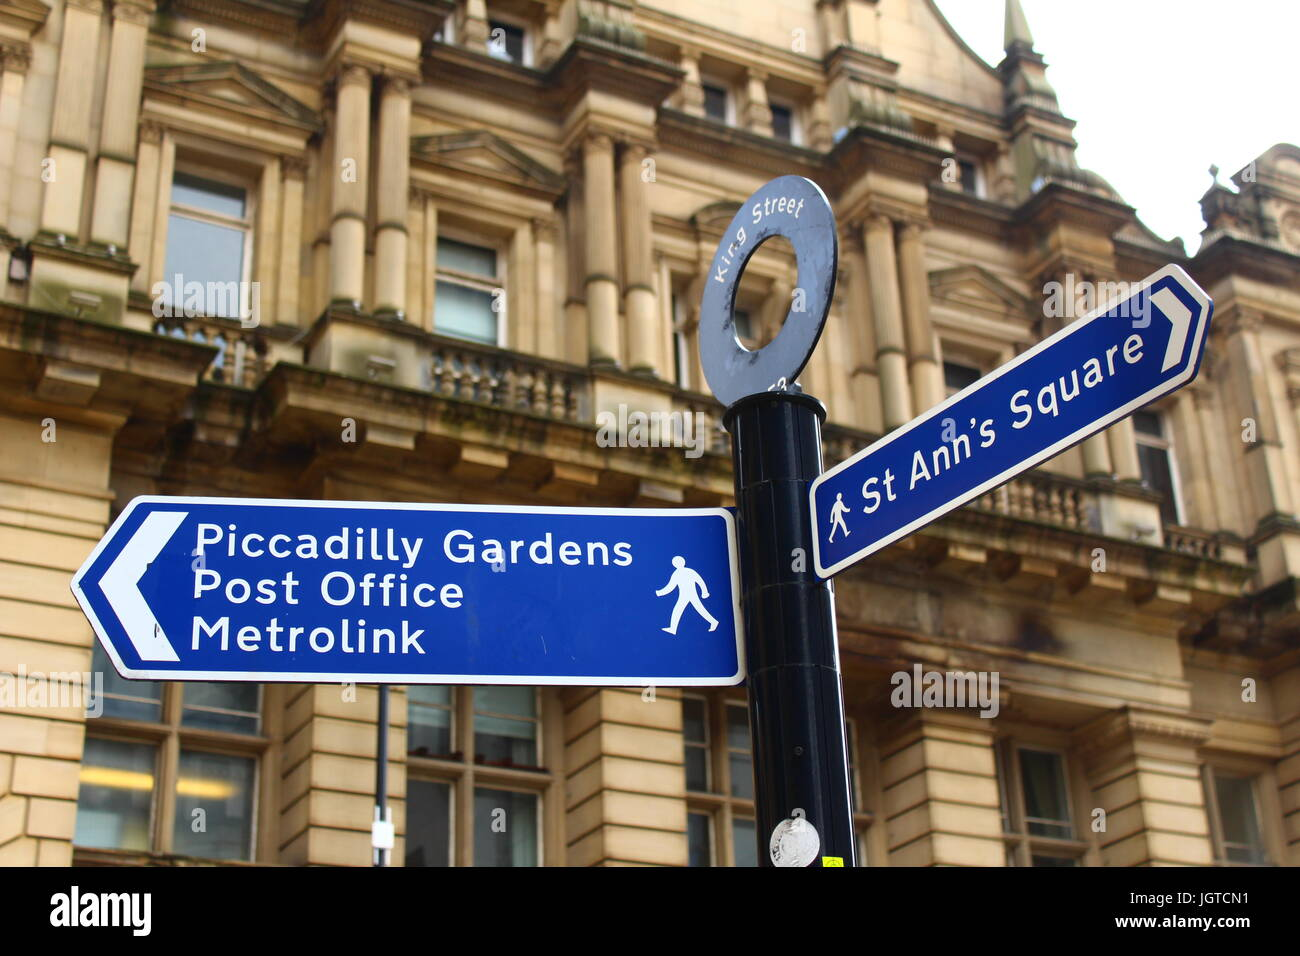 Manchester Arndale Shopping Centre - View of Exterior at Front of Main Entrance - Stock Image